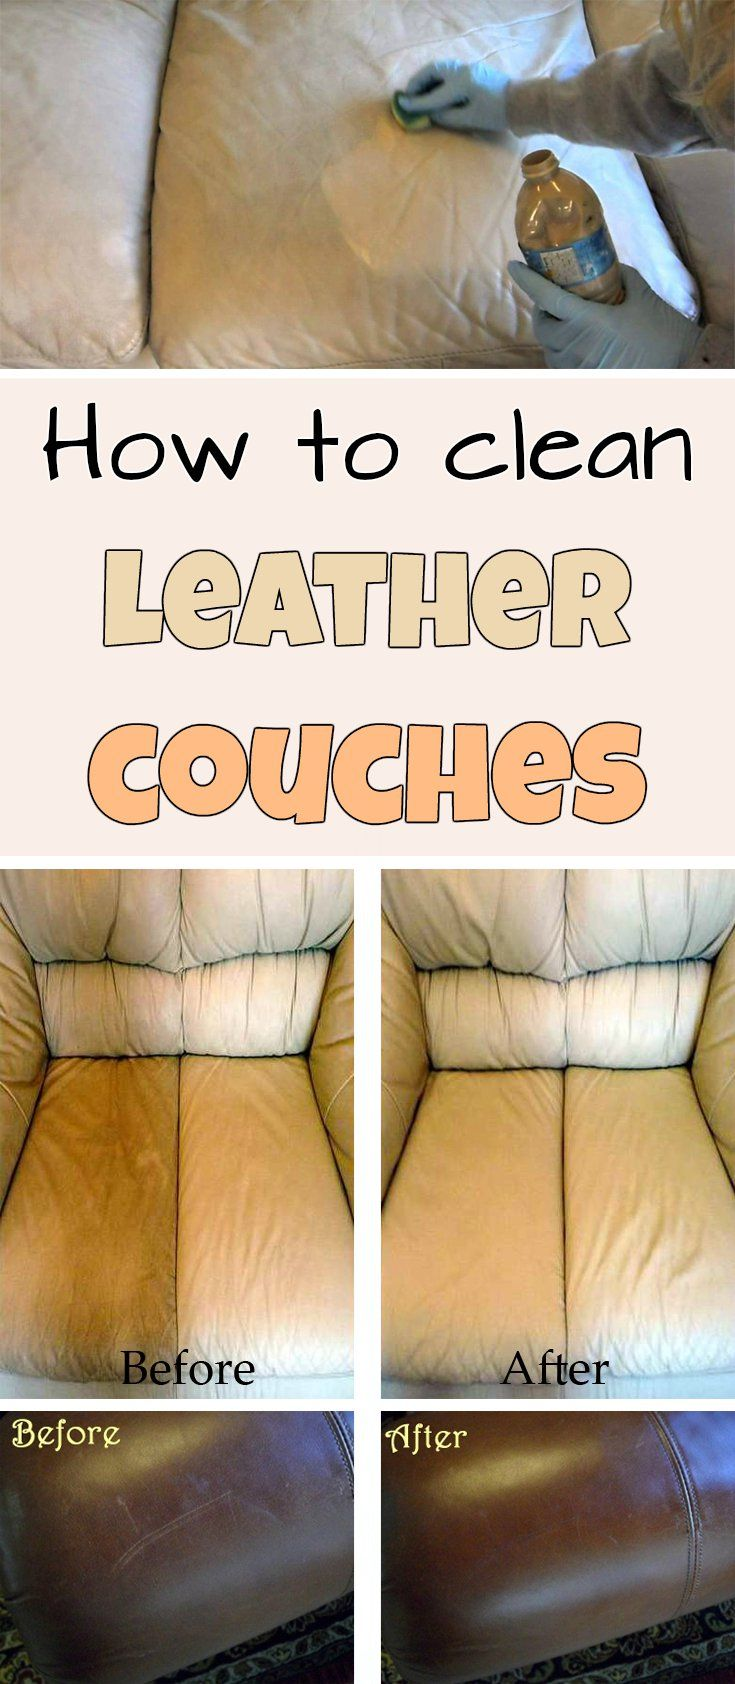 How to clean leather couches - myCleaningSolutions.com ...